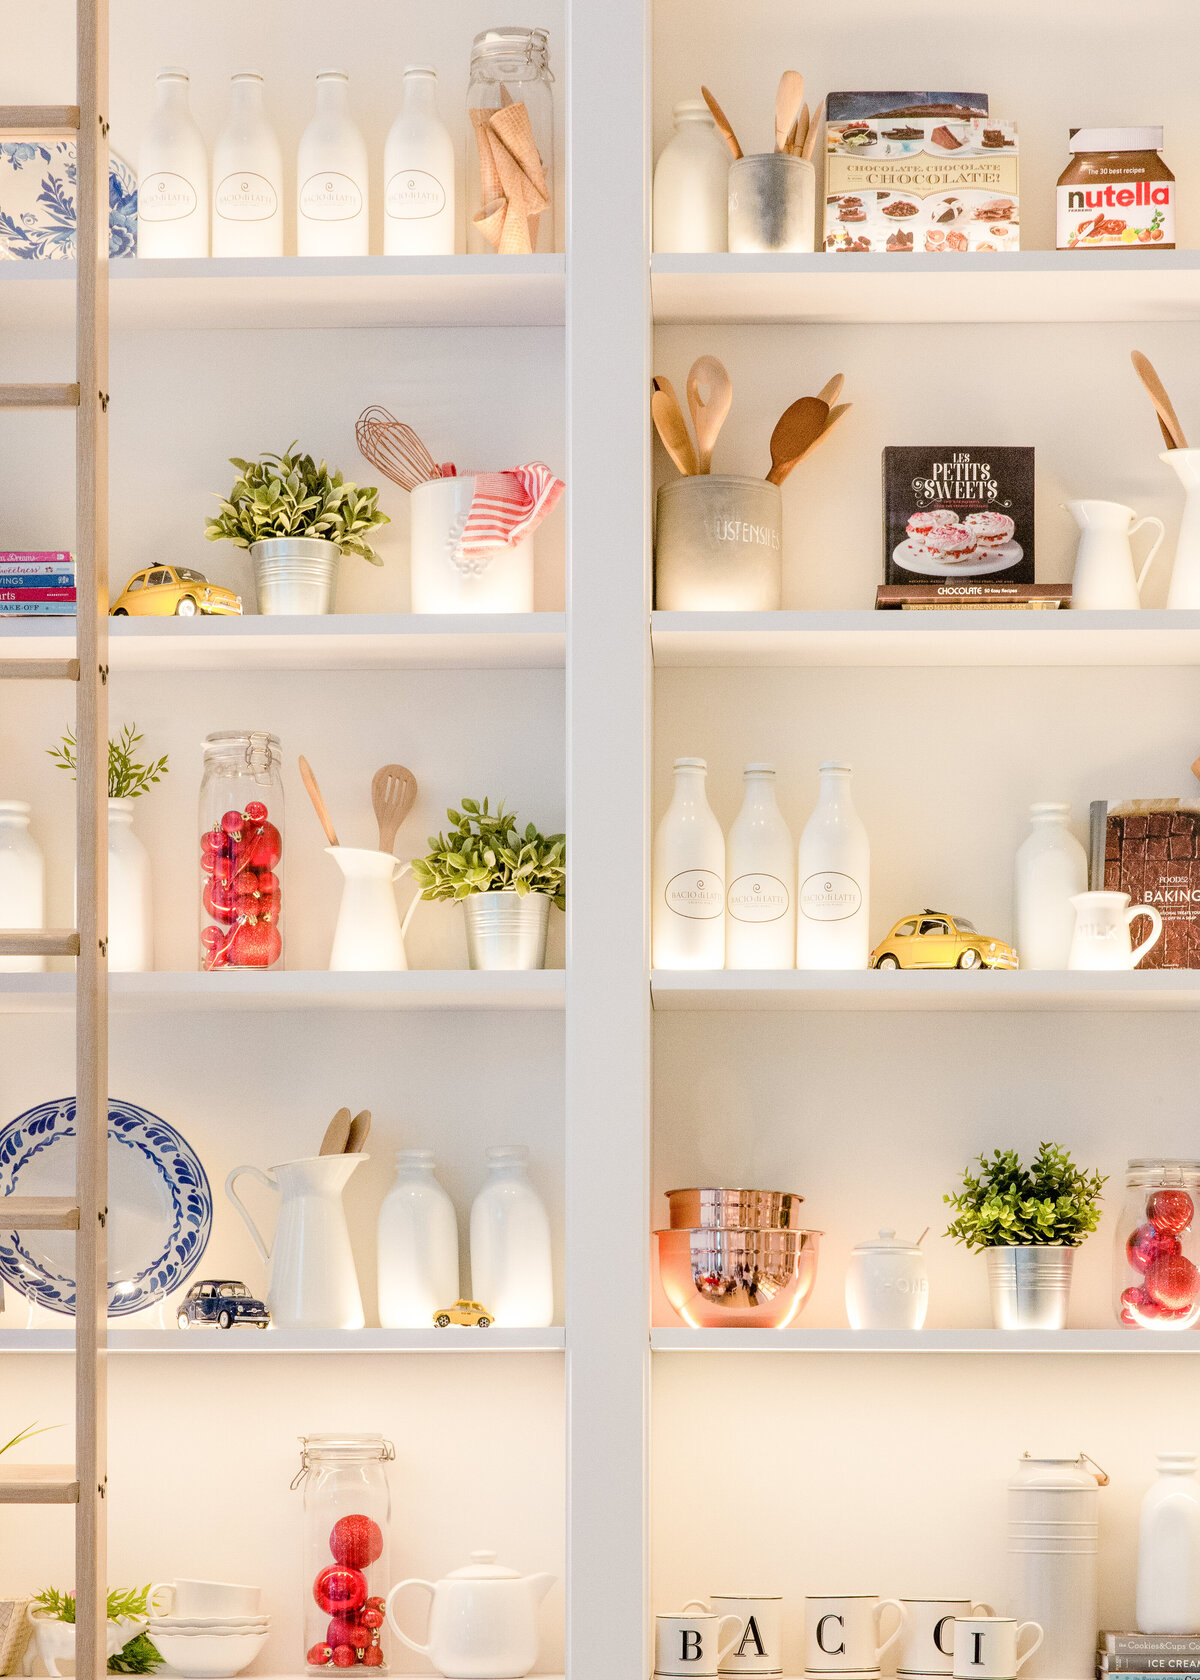 A well presented pantry is organised with white ceramic bottles, a ladder to reach higher larder shelves and red tomatoes.